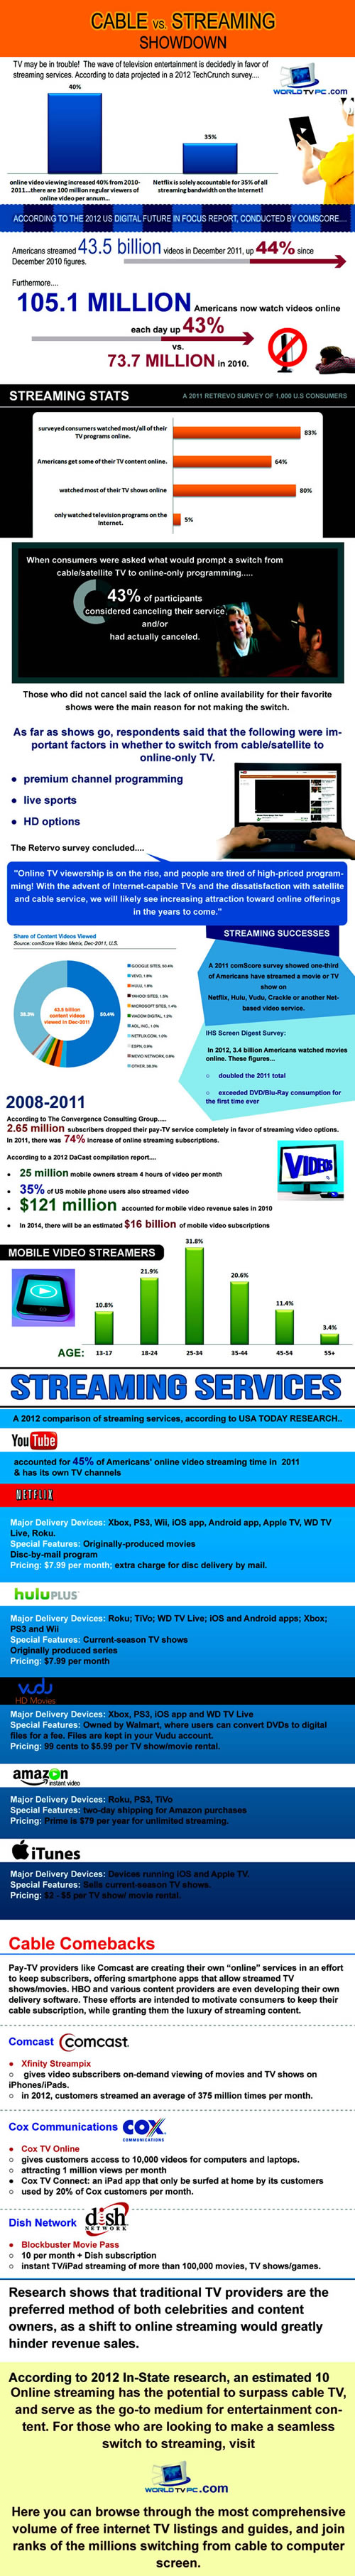 cablevstreaming-infographic